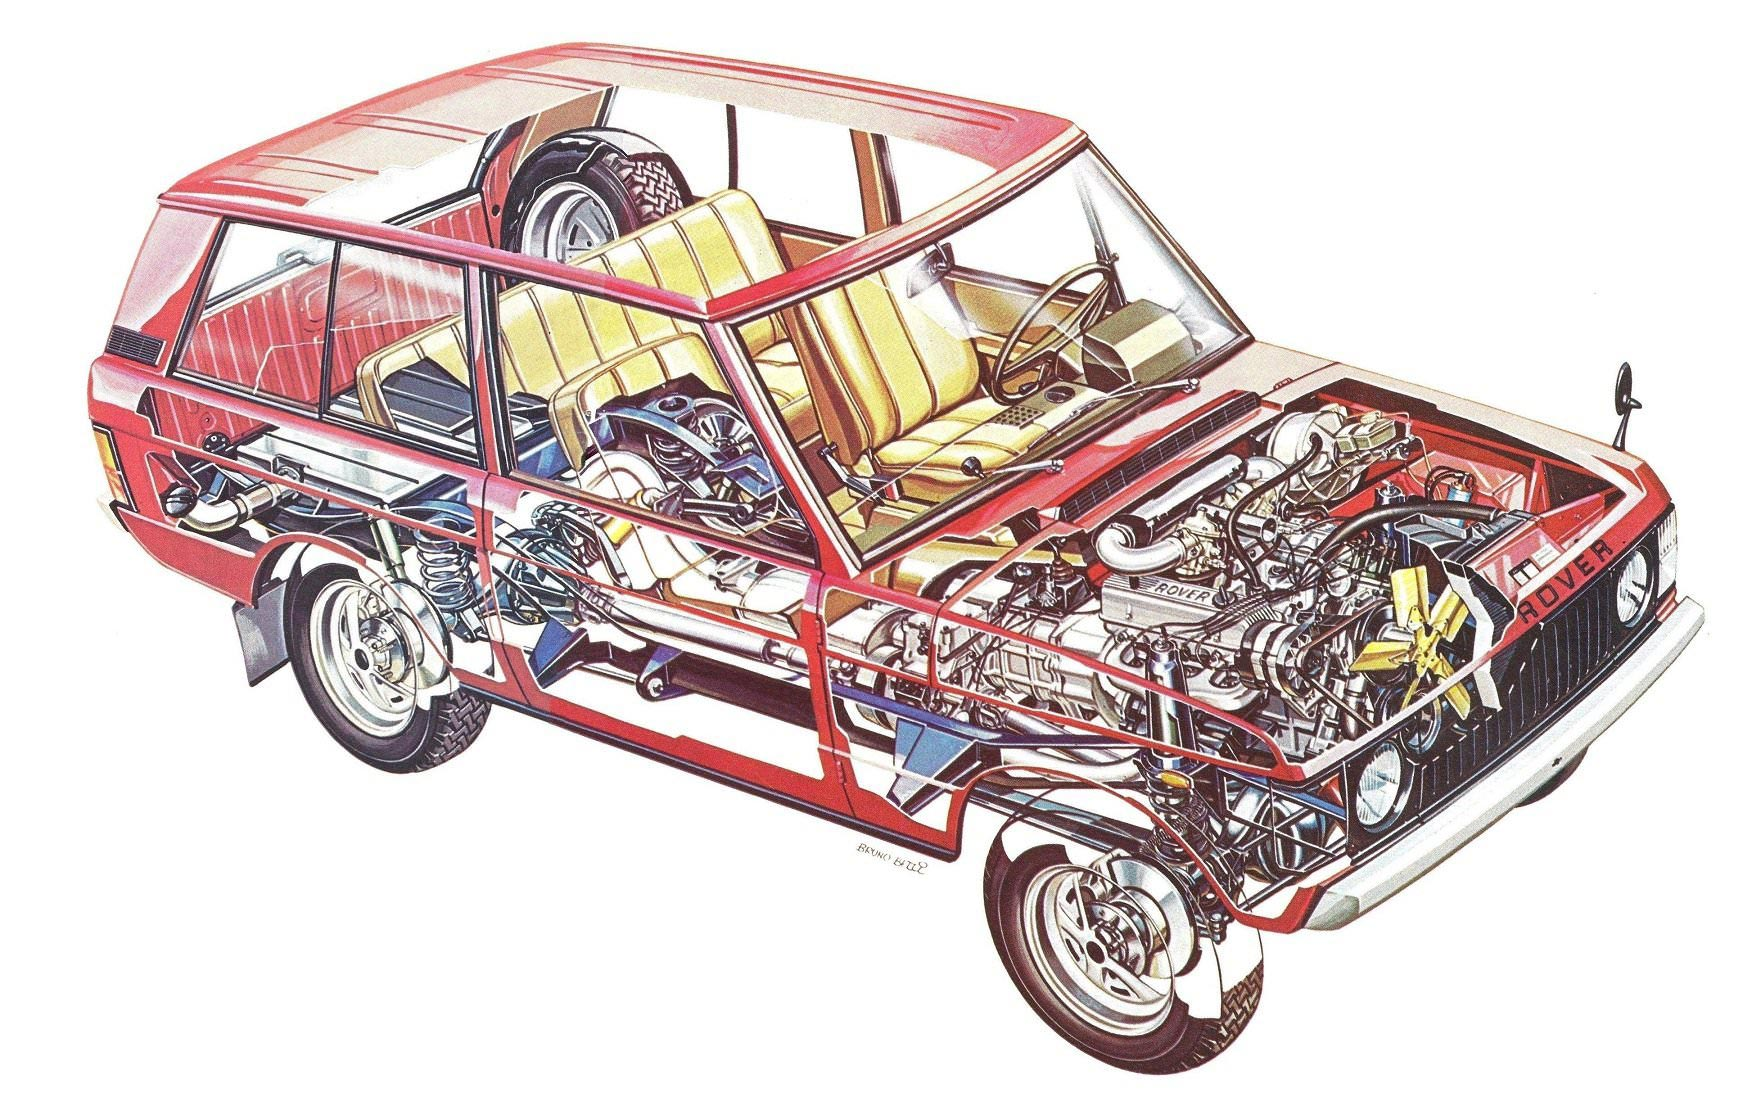 Land Rover Range Rover classic cutaway